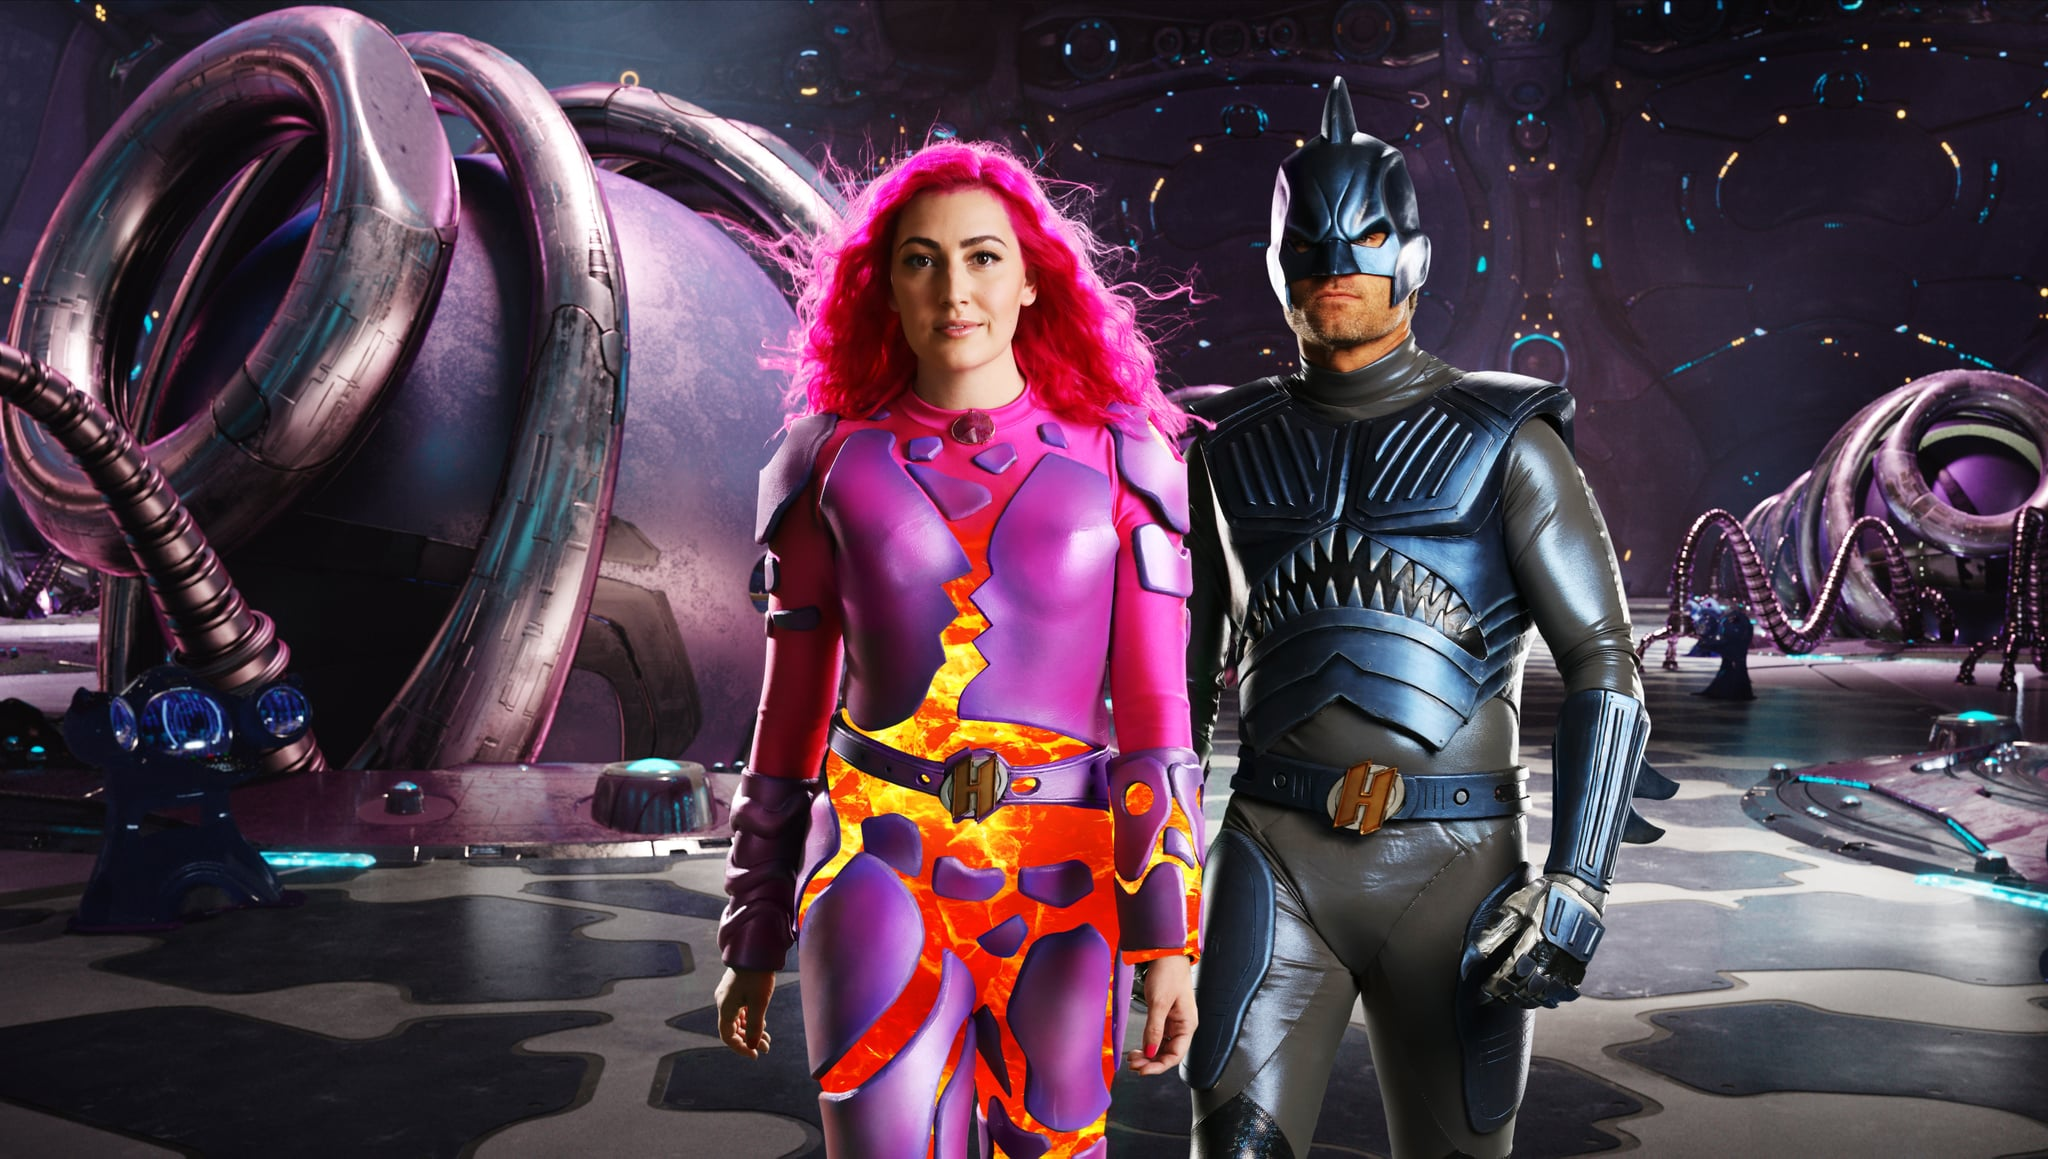 WECAN BE HEROES:  (L-R) TAYLOR DOOLEY as LAVAGIRL, JJ DASHNAW AS SHARKBOY. Cr. NETFLIX © 2020